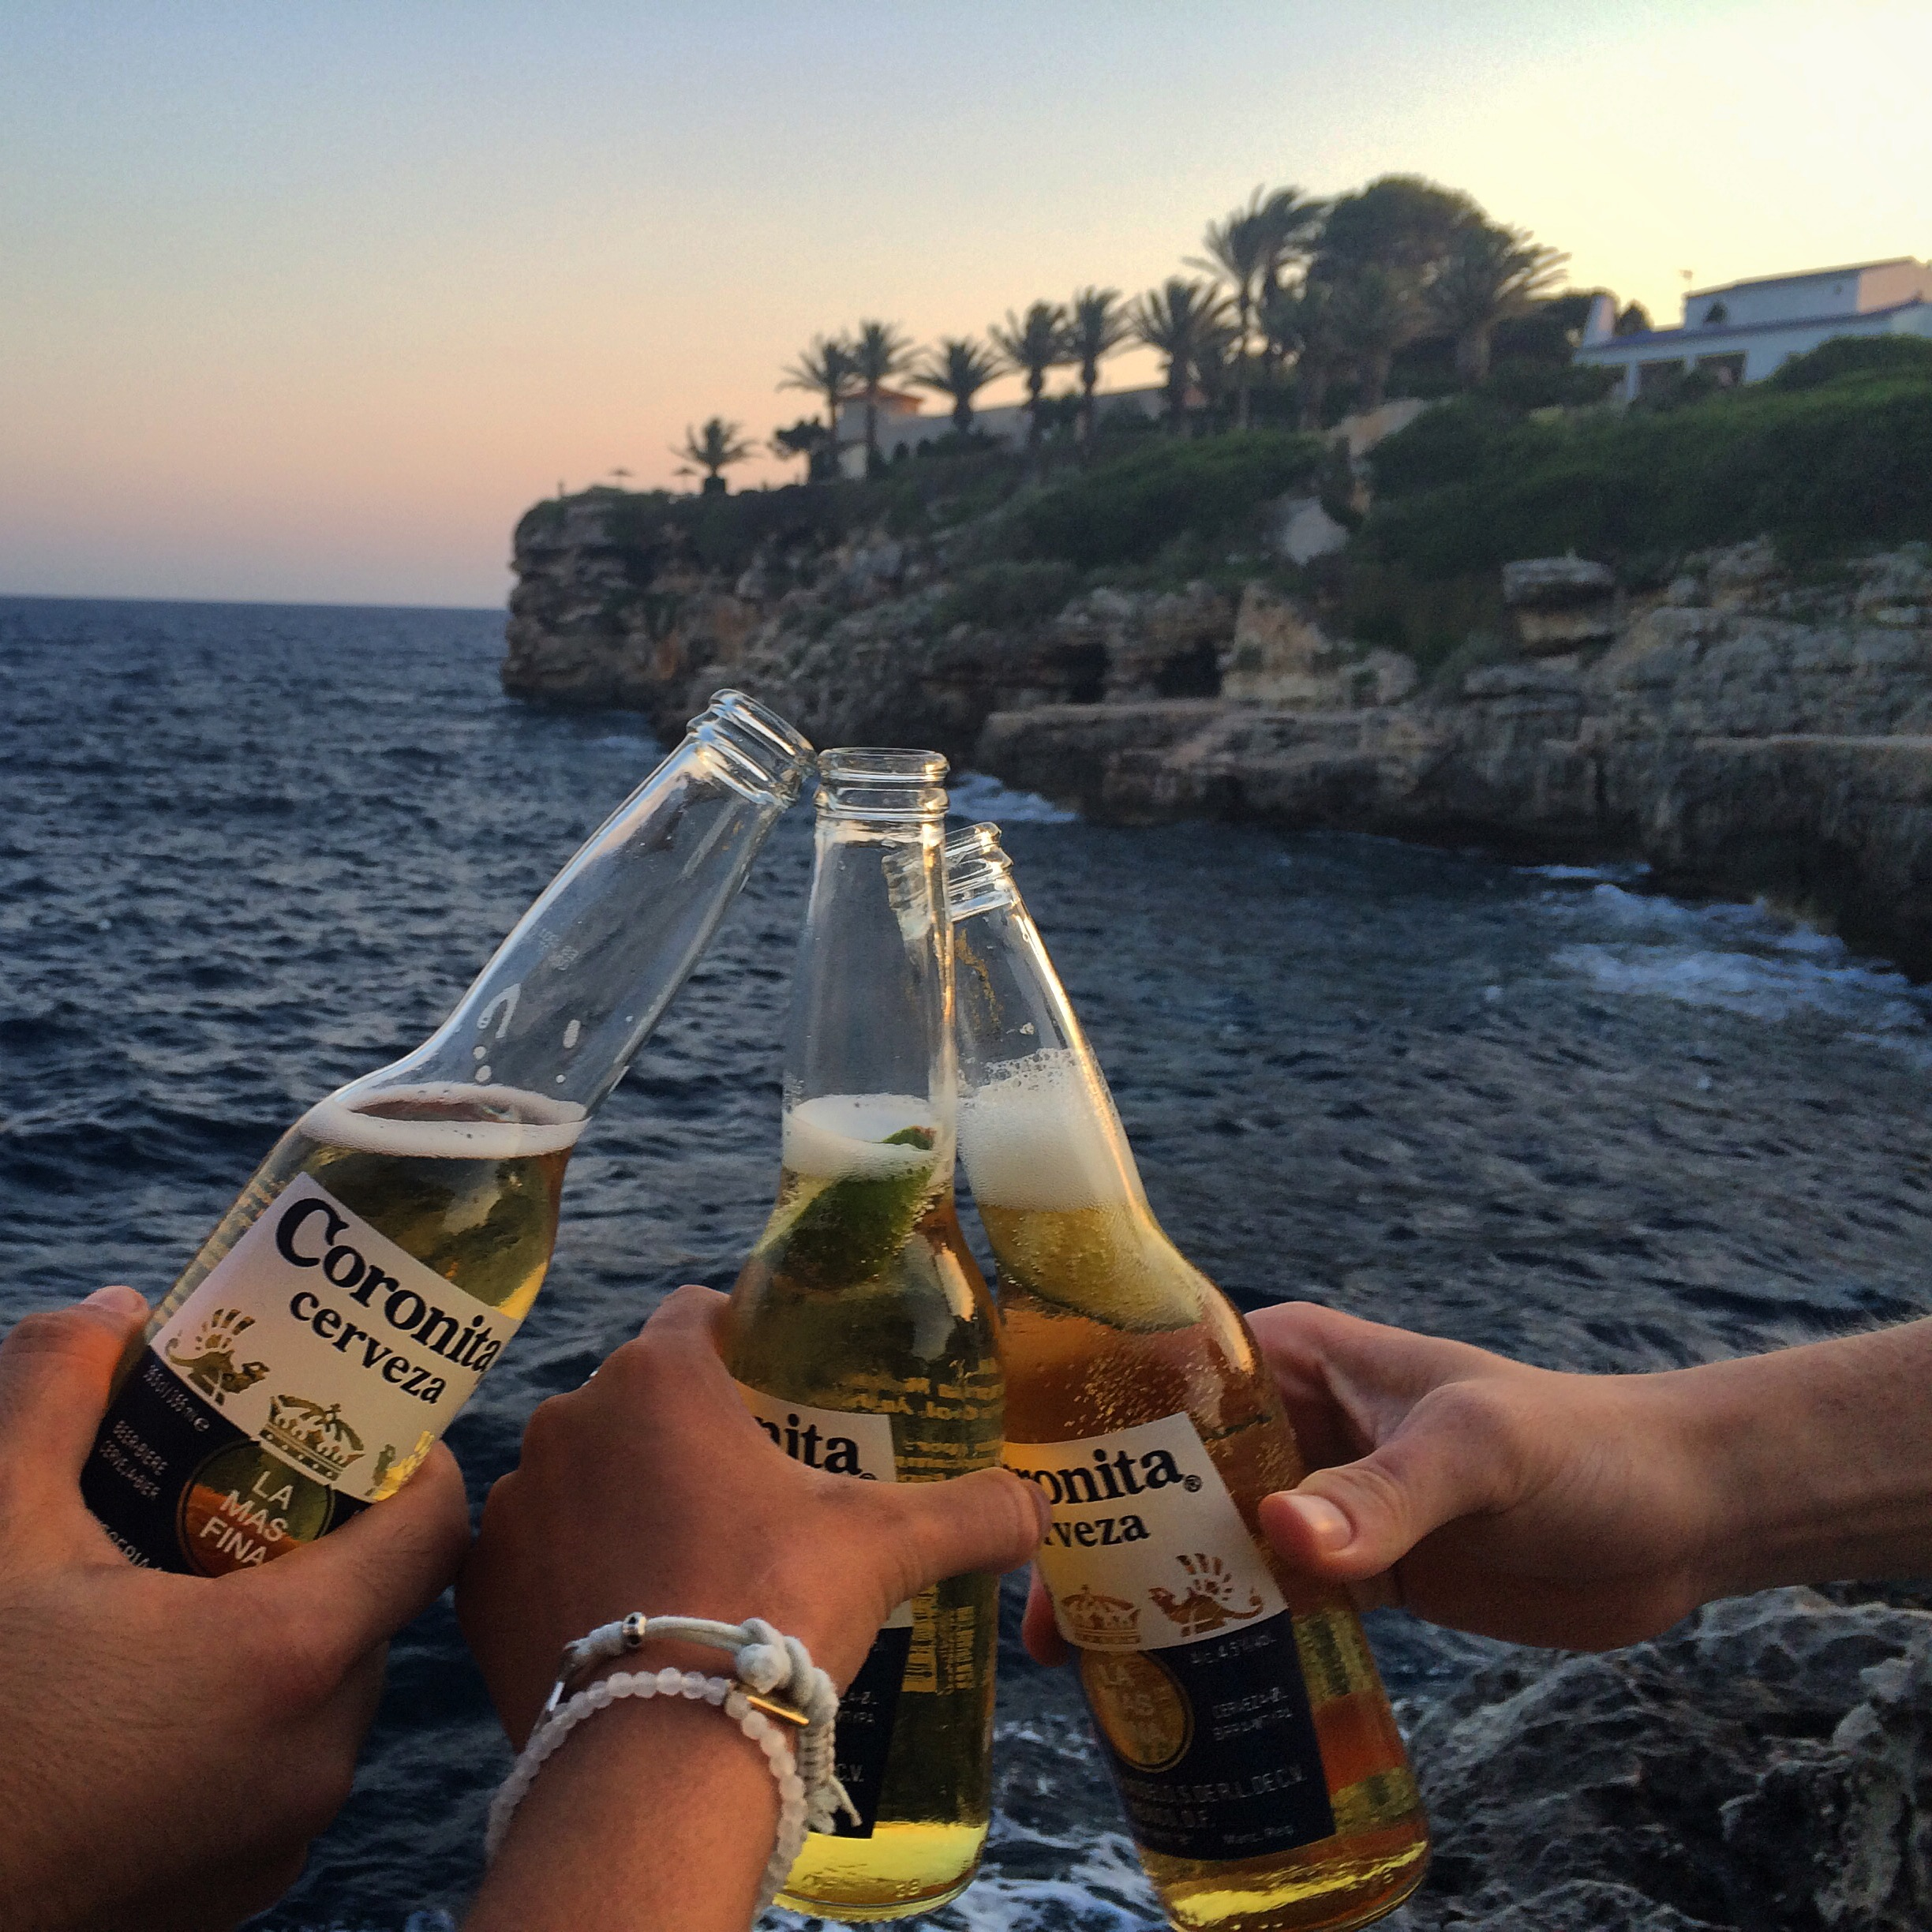 Catching the sunset at Cala en Brut